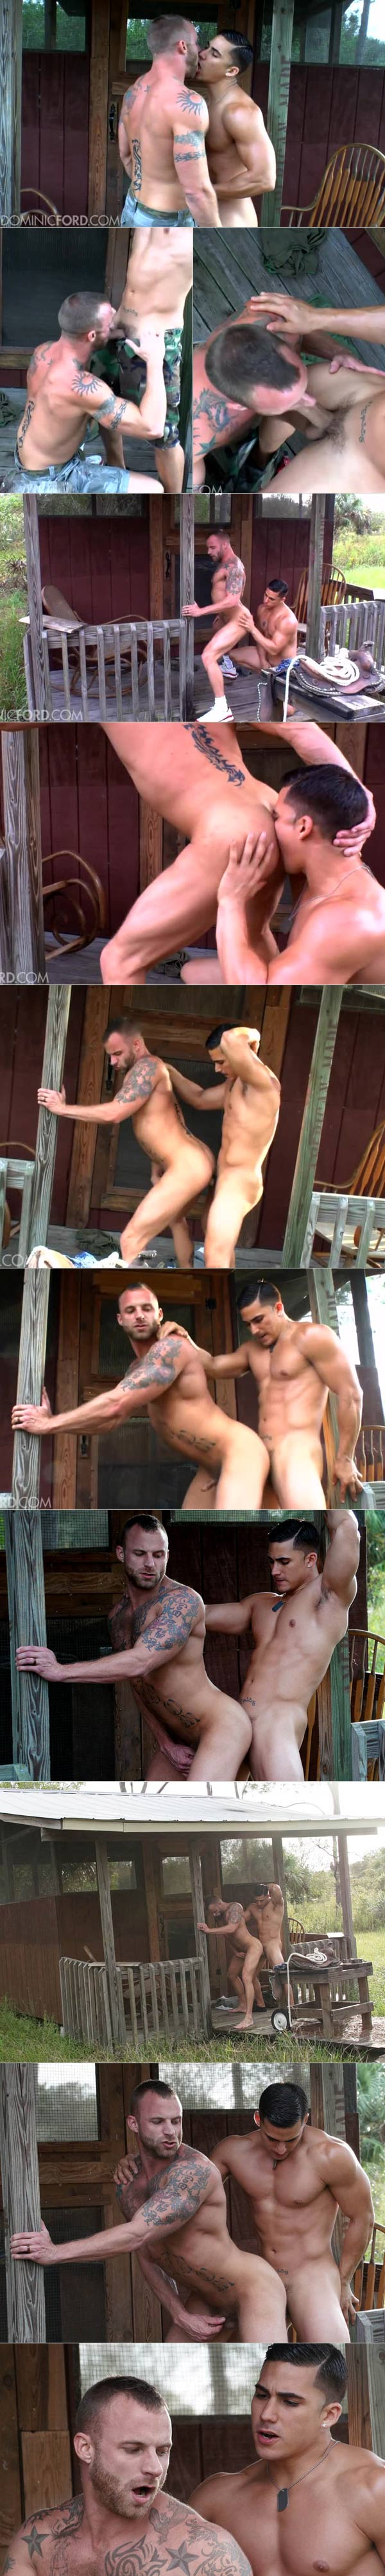 SYTYCF III, Episode 5 (Topher DiMaggio & Derek Parker) at DominicFord.com